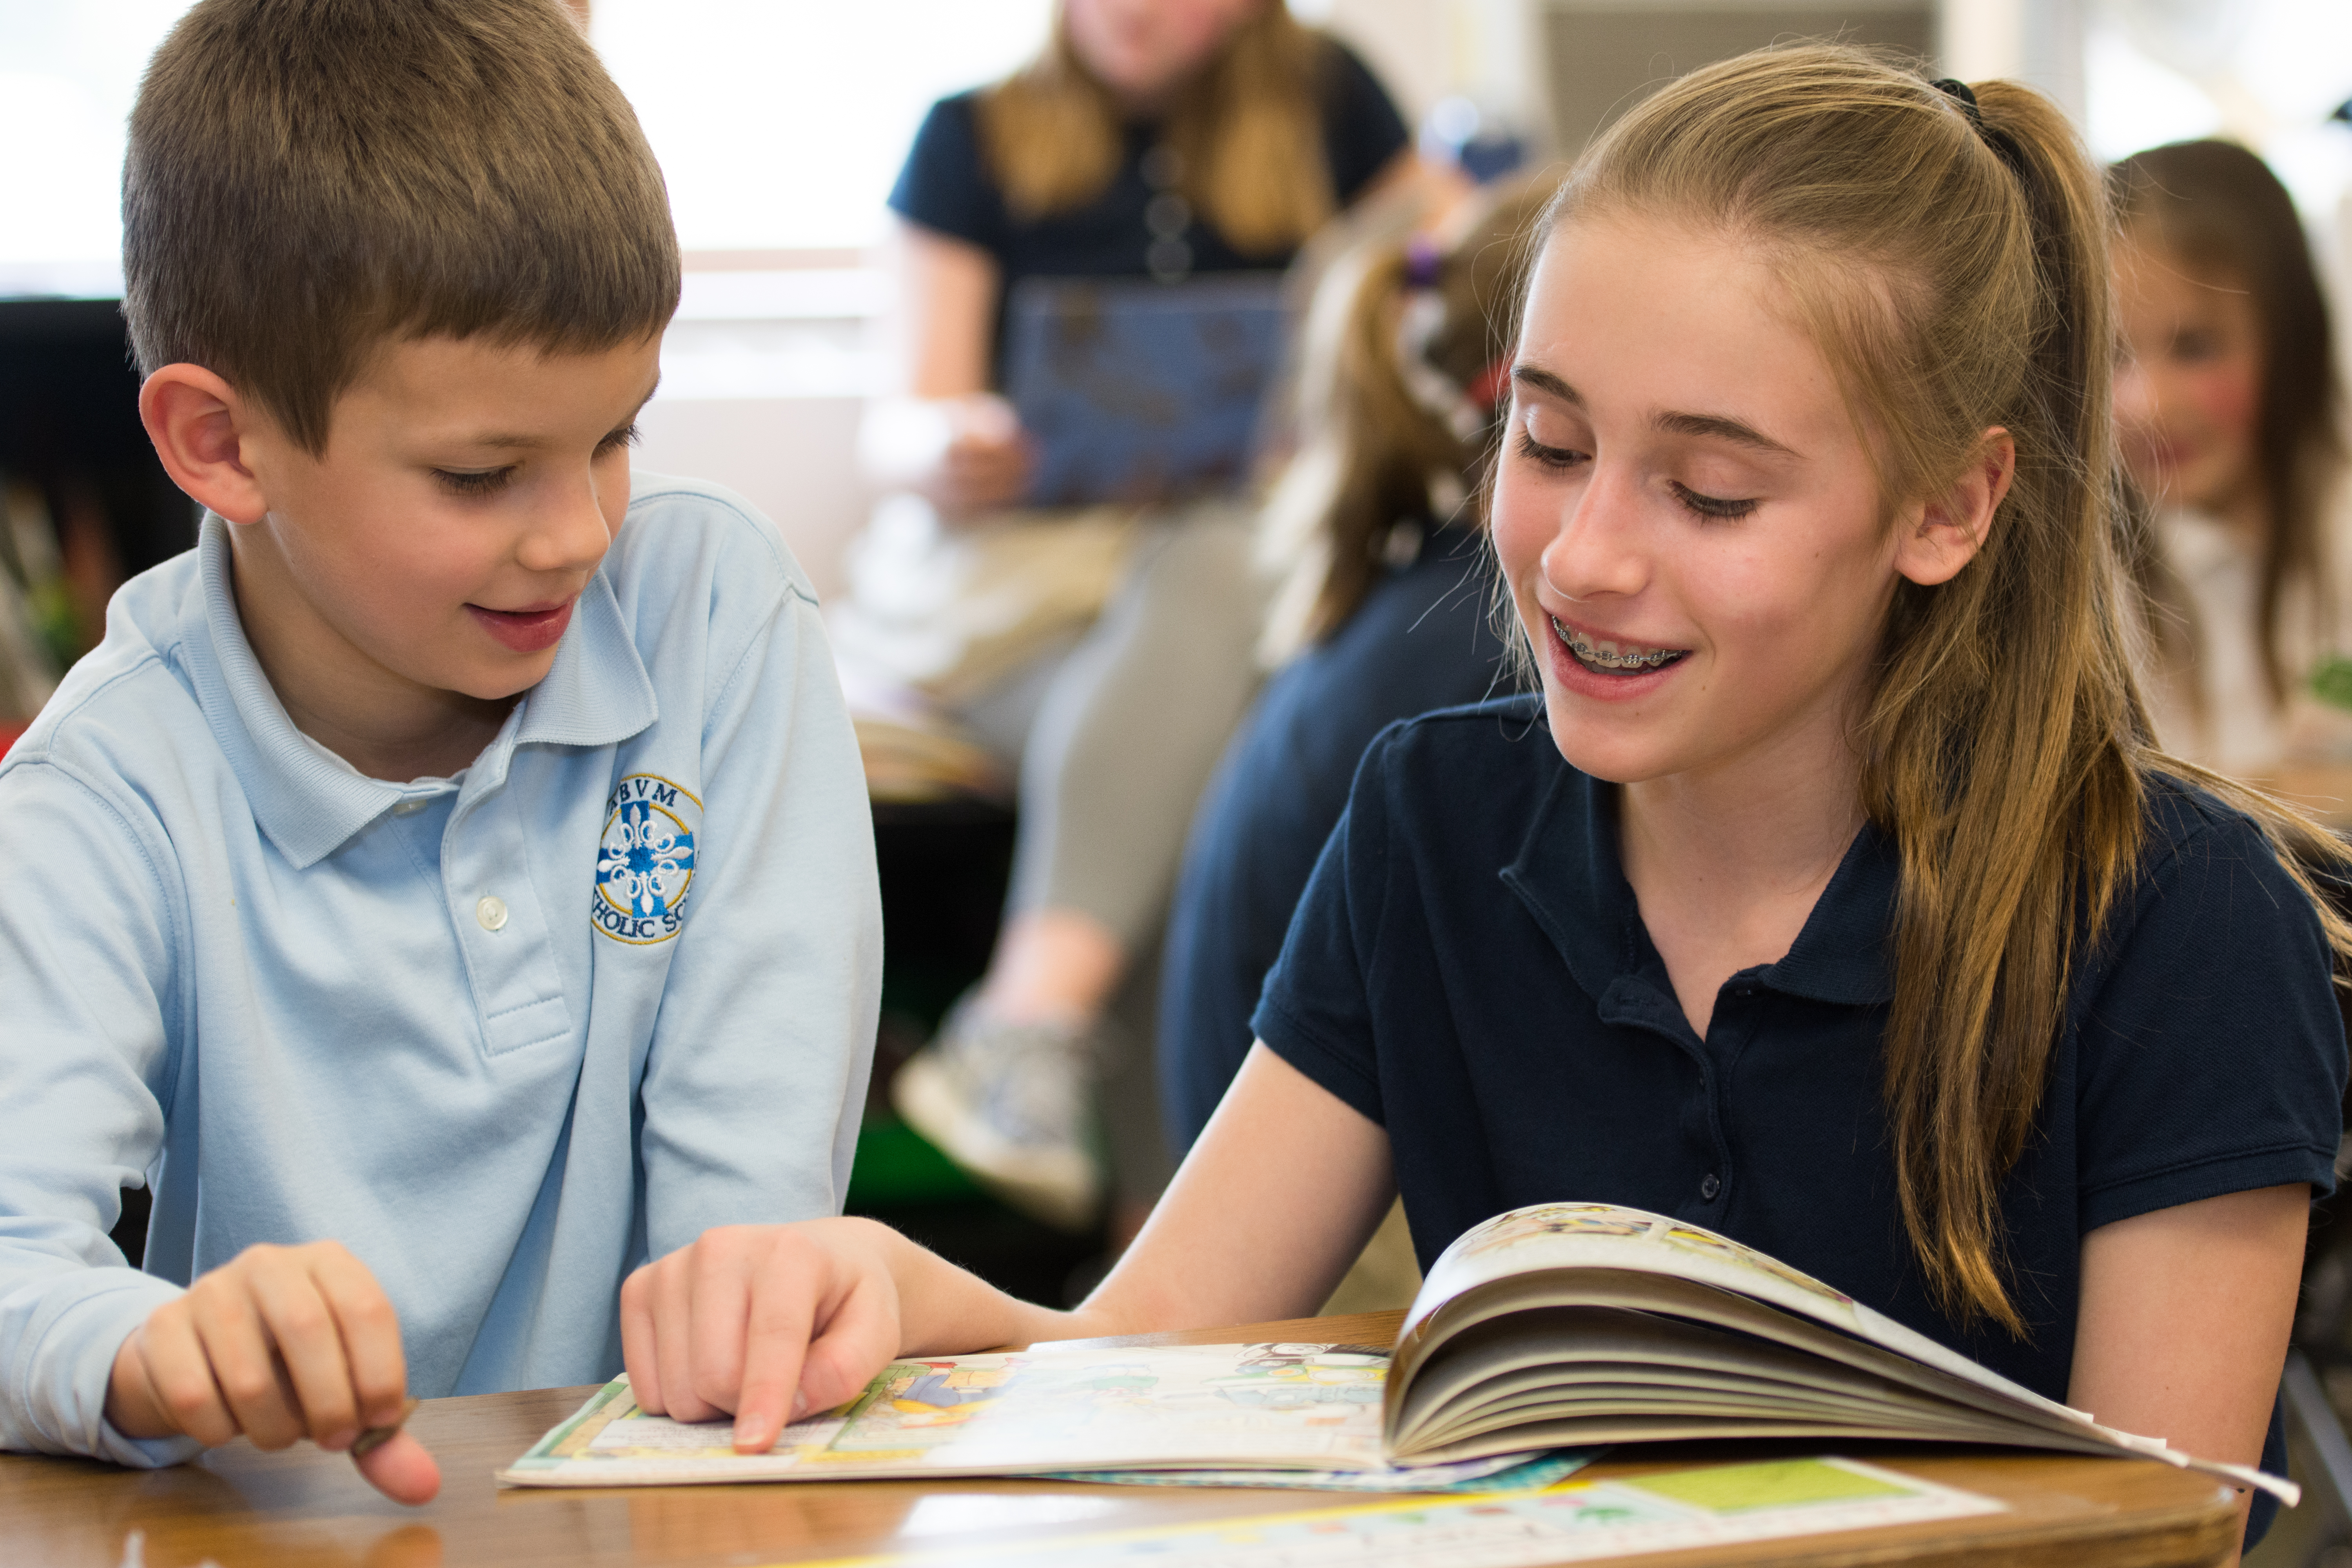 two school-age children, a boy and girl, read together at assumption of the blessed virgin mary catholic school in belmont, michigan